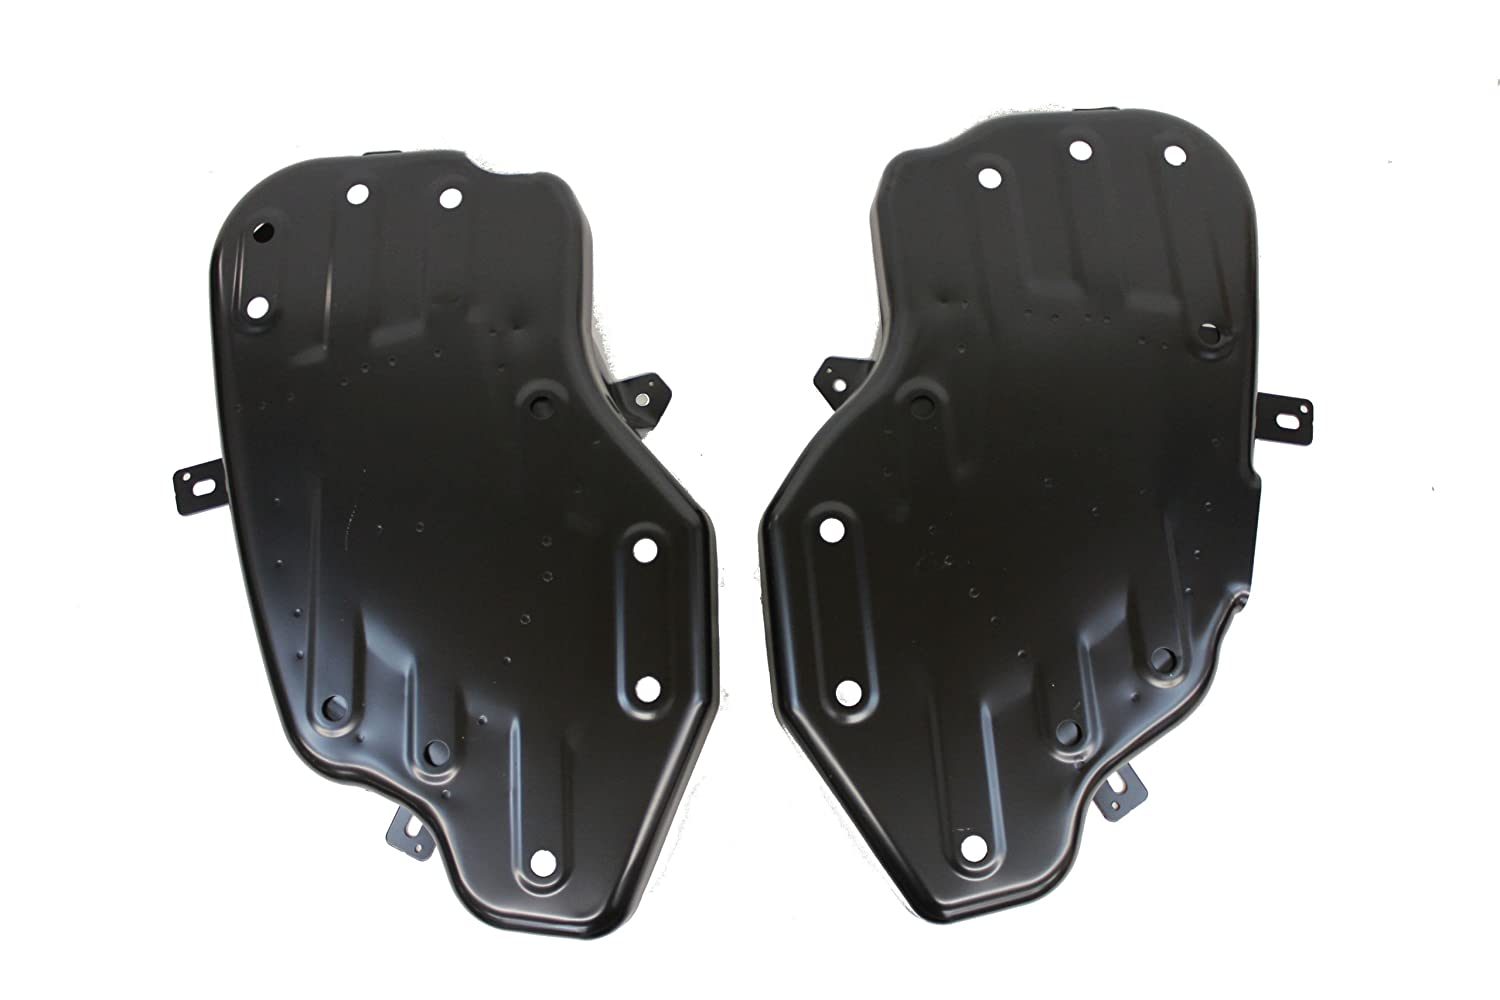 Genuine Jeep Accessories 82211999 Production Fuel Tank Skid Plate